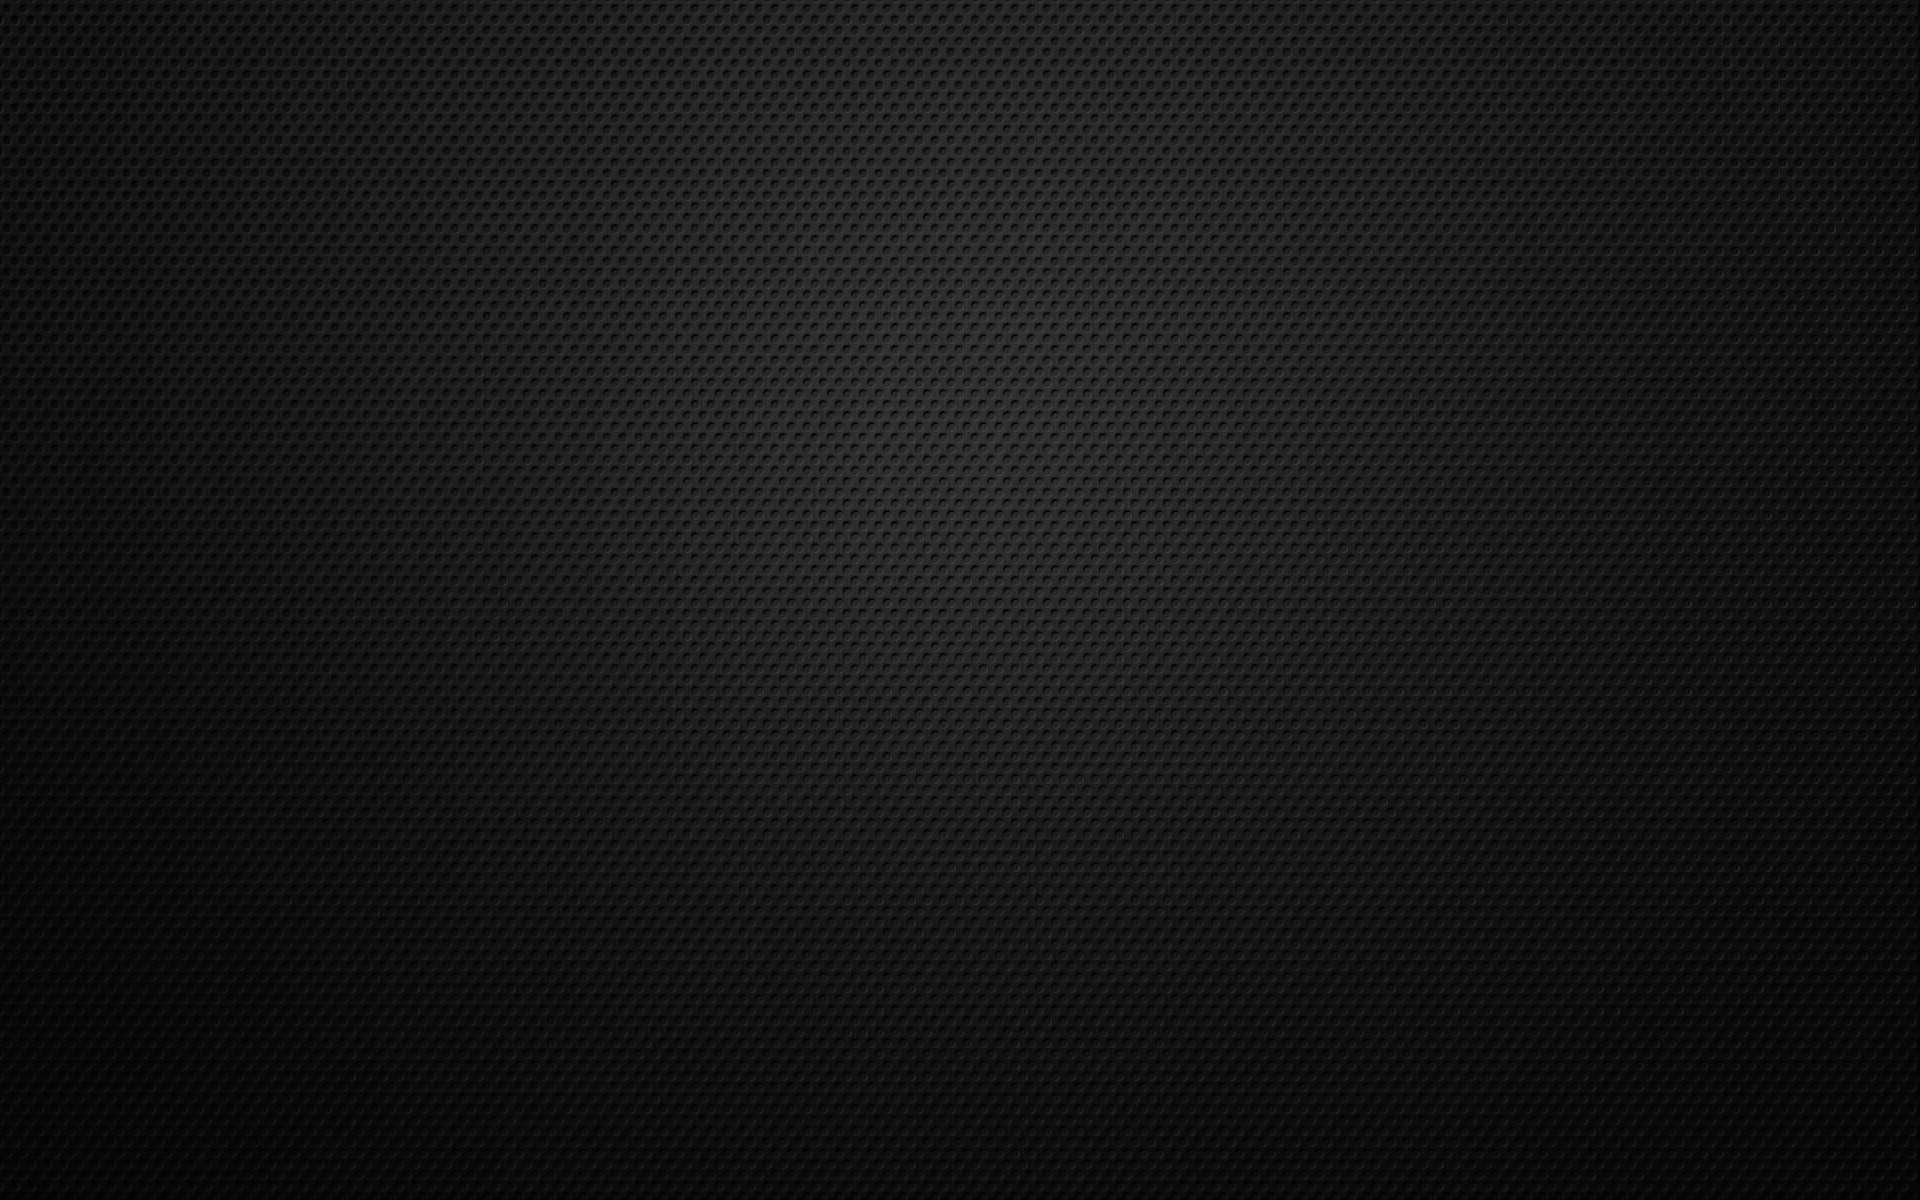 Black Wallpaper Background : Black Desktop Wallpapers Dark Background (63+ images)